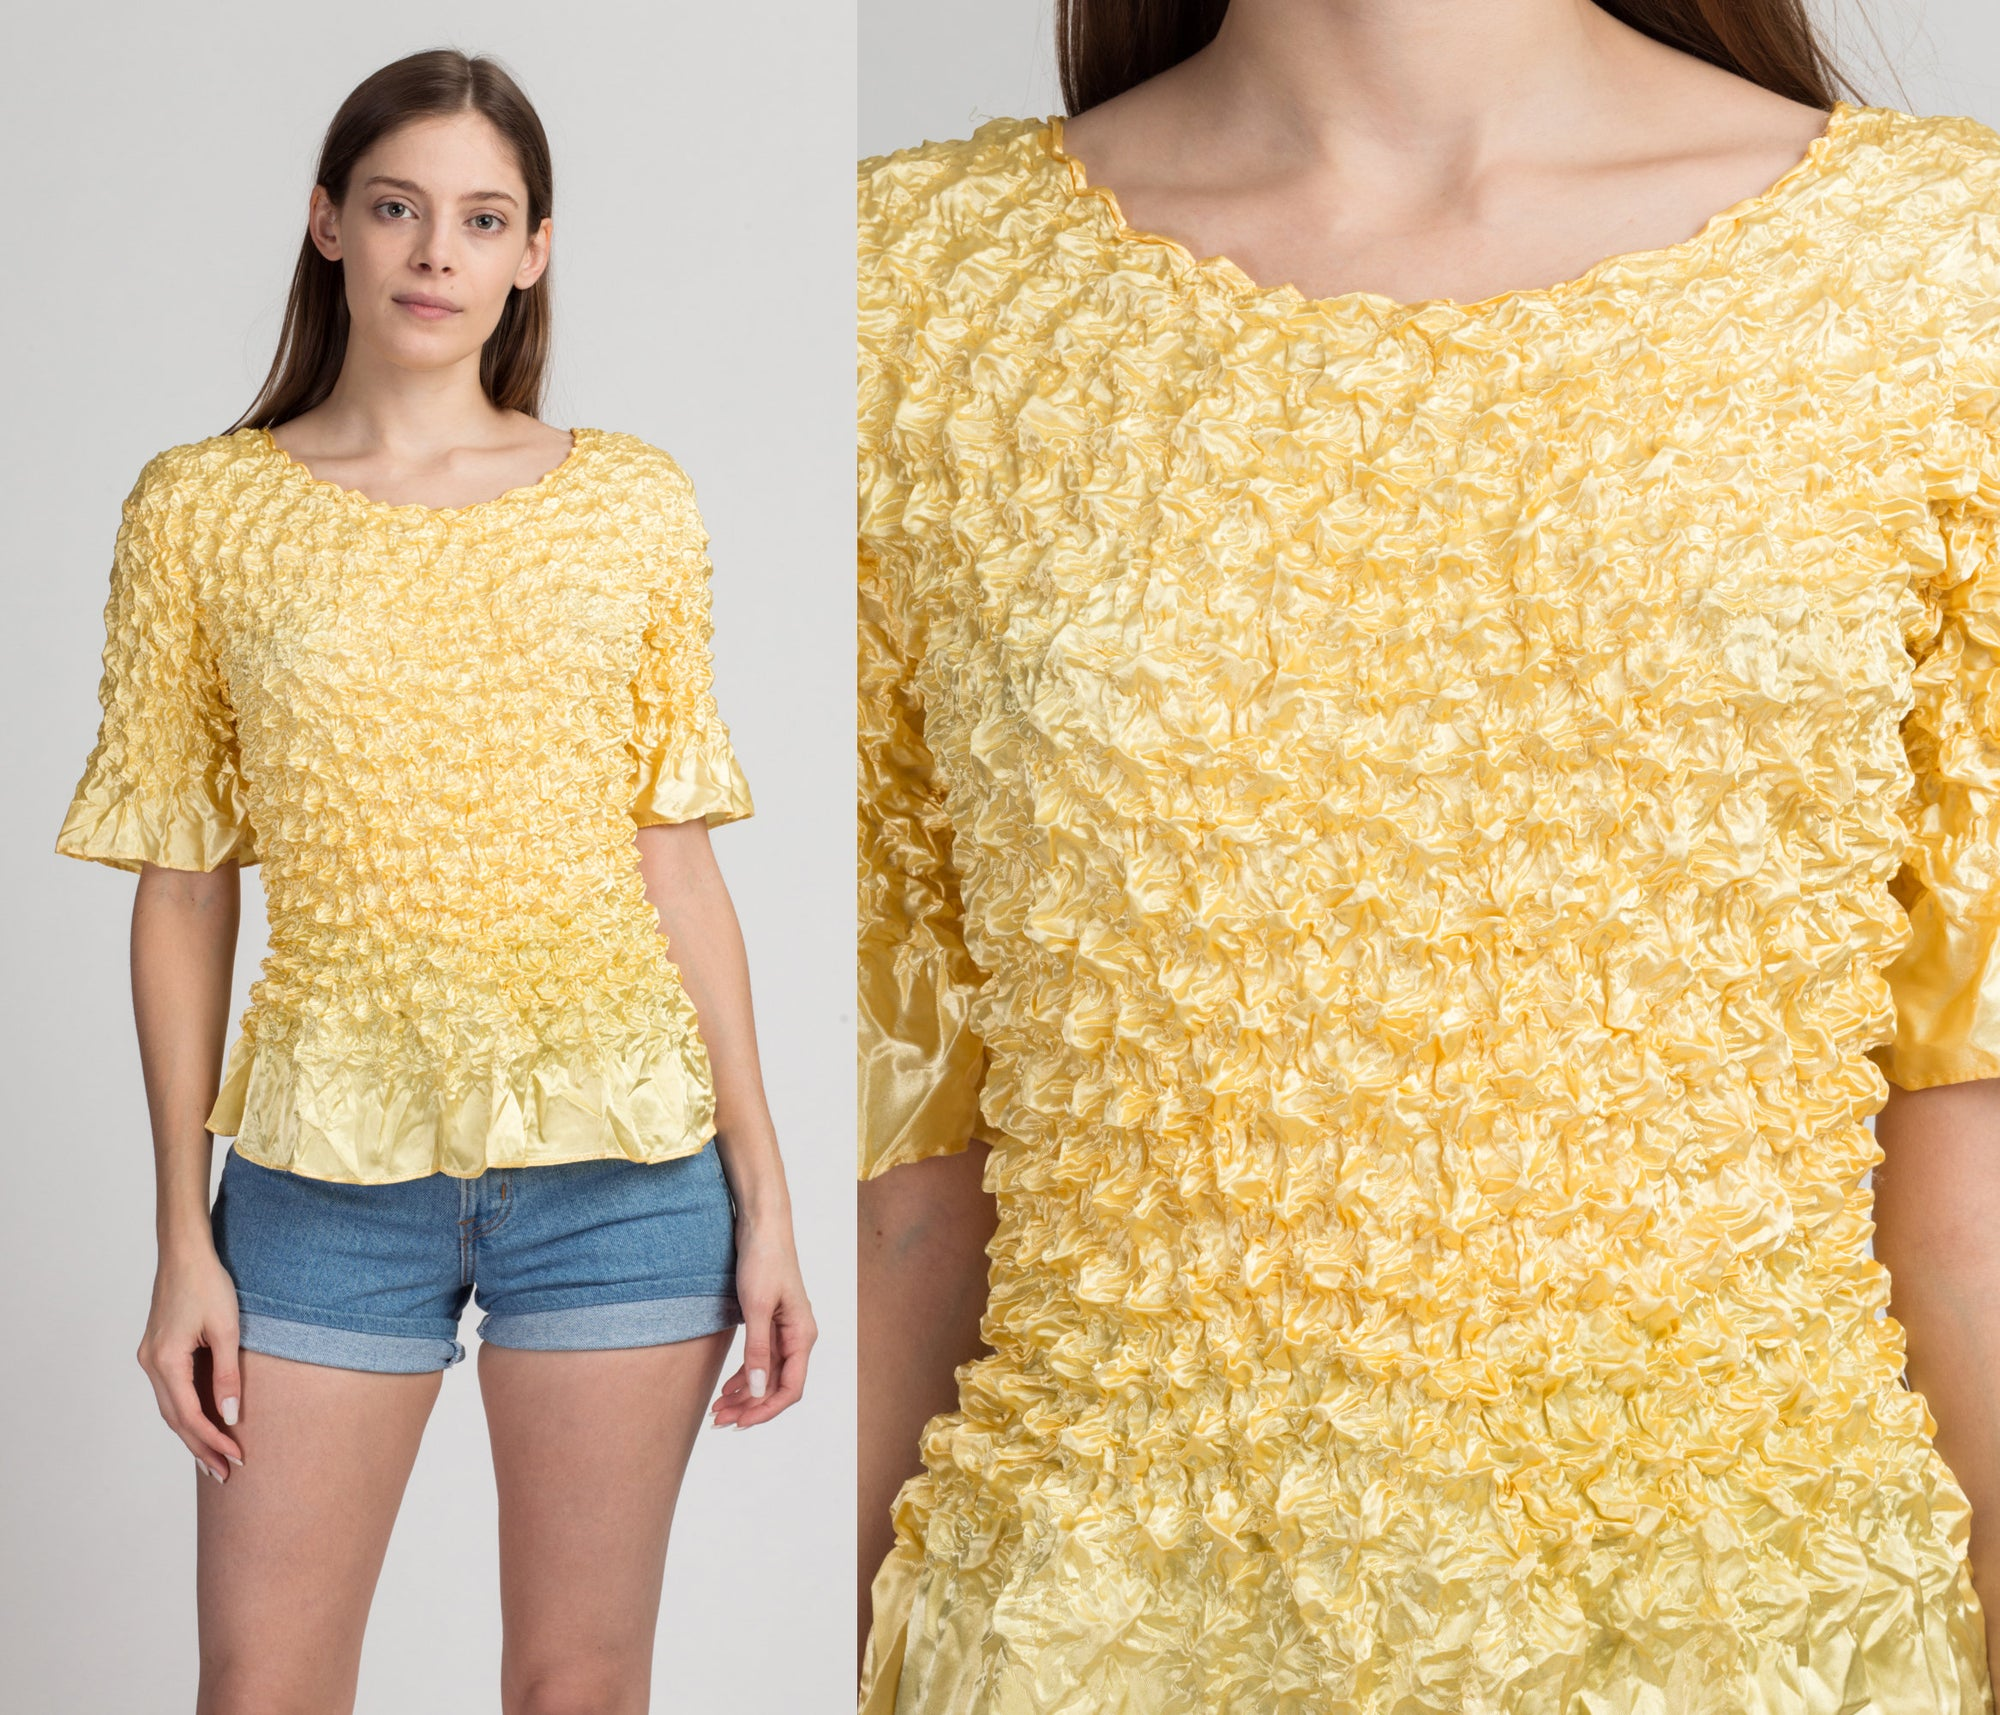 90s Yellow Stretchy Popcorn Crinkle Shirt - One Size | Vintage Short Sleeve Top